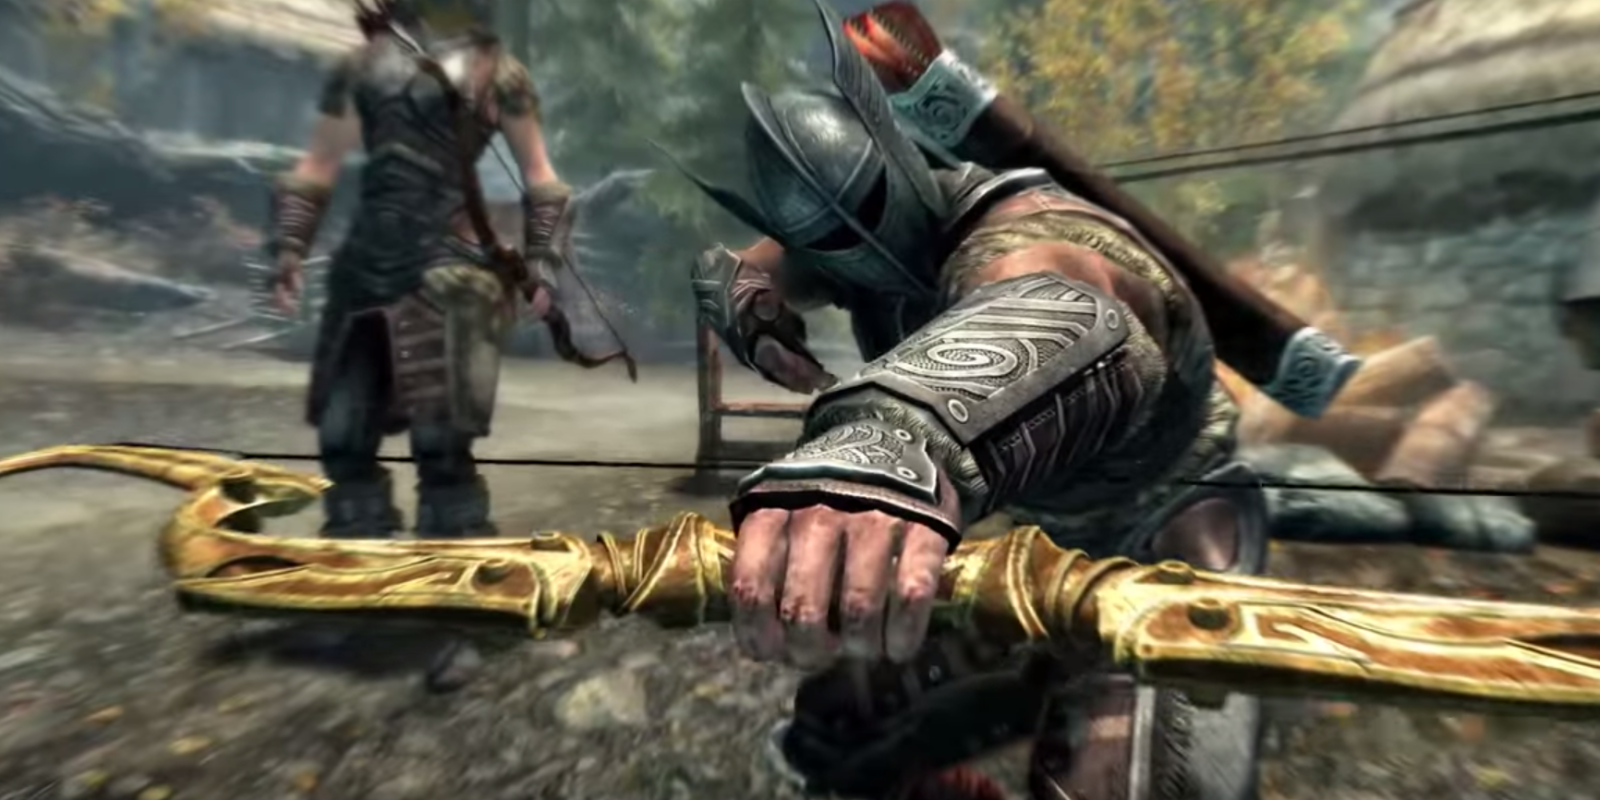 New Action Games For Ps3 : New trailer compares ps and skyrim